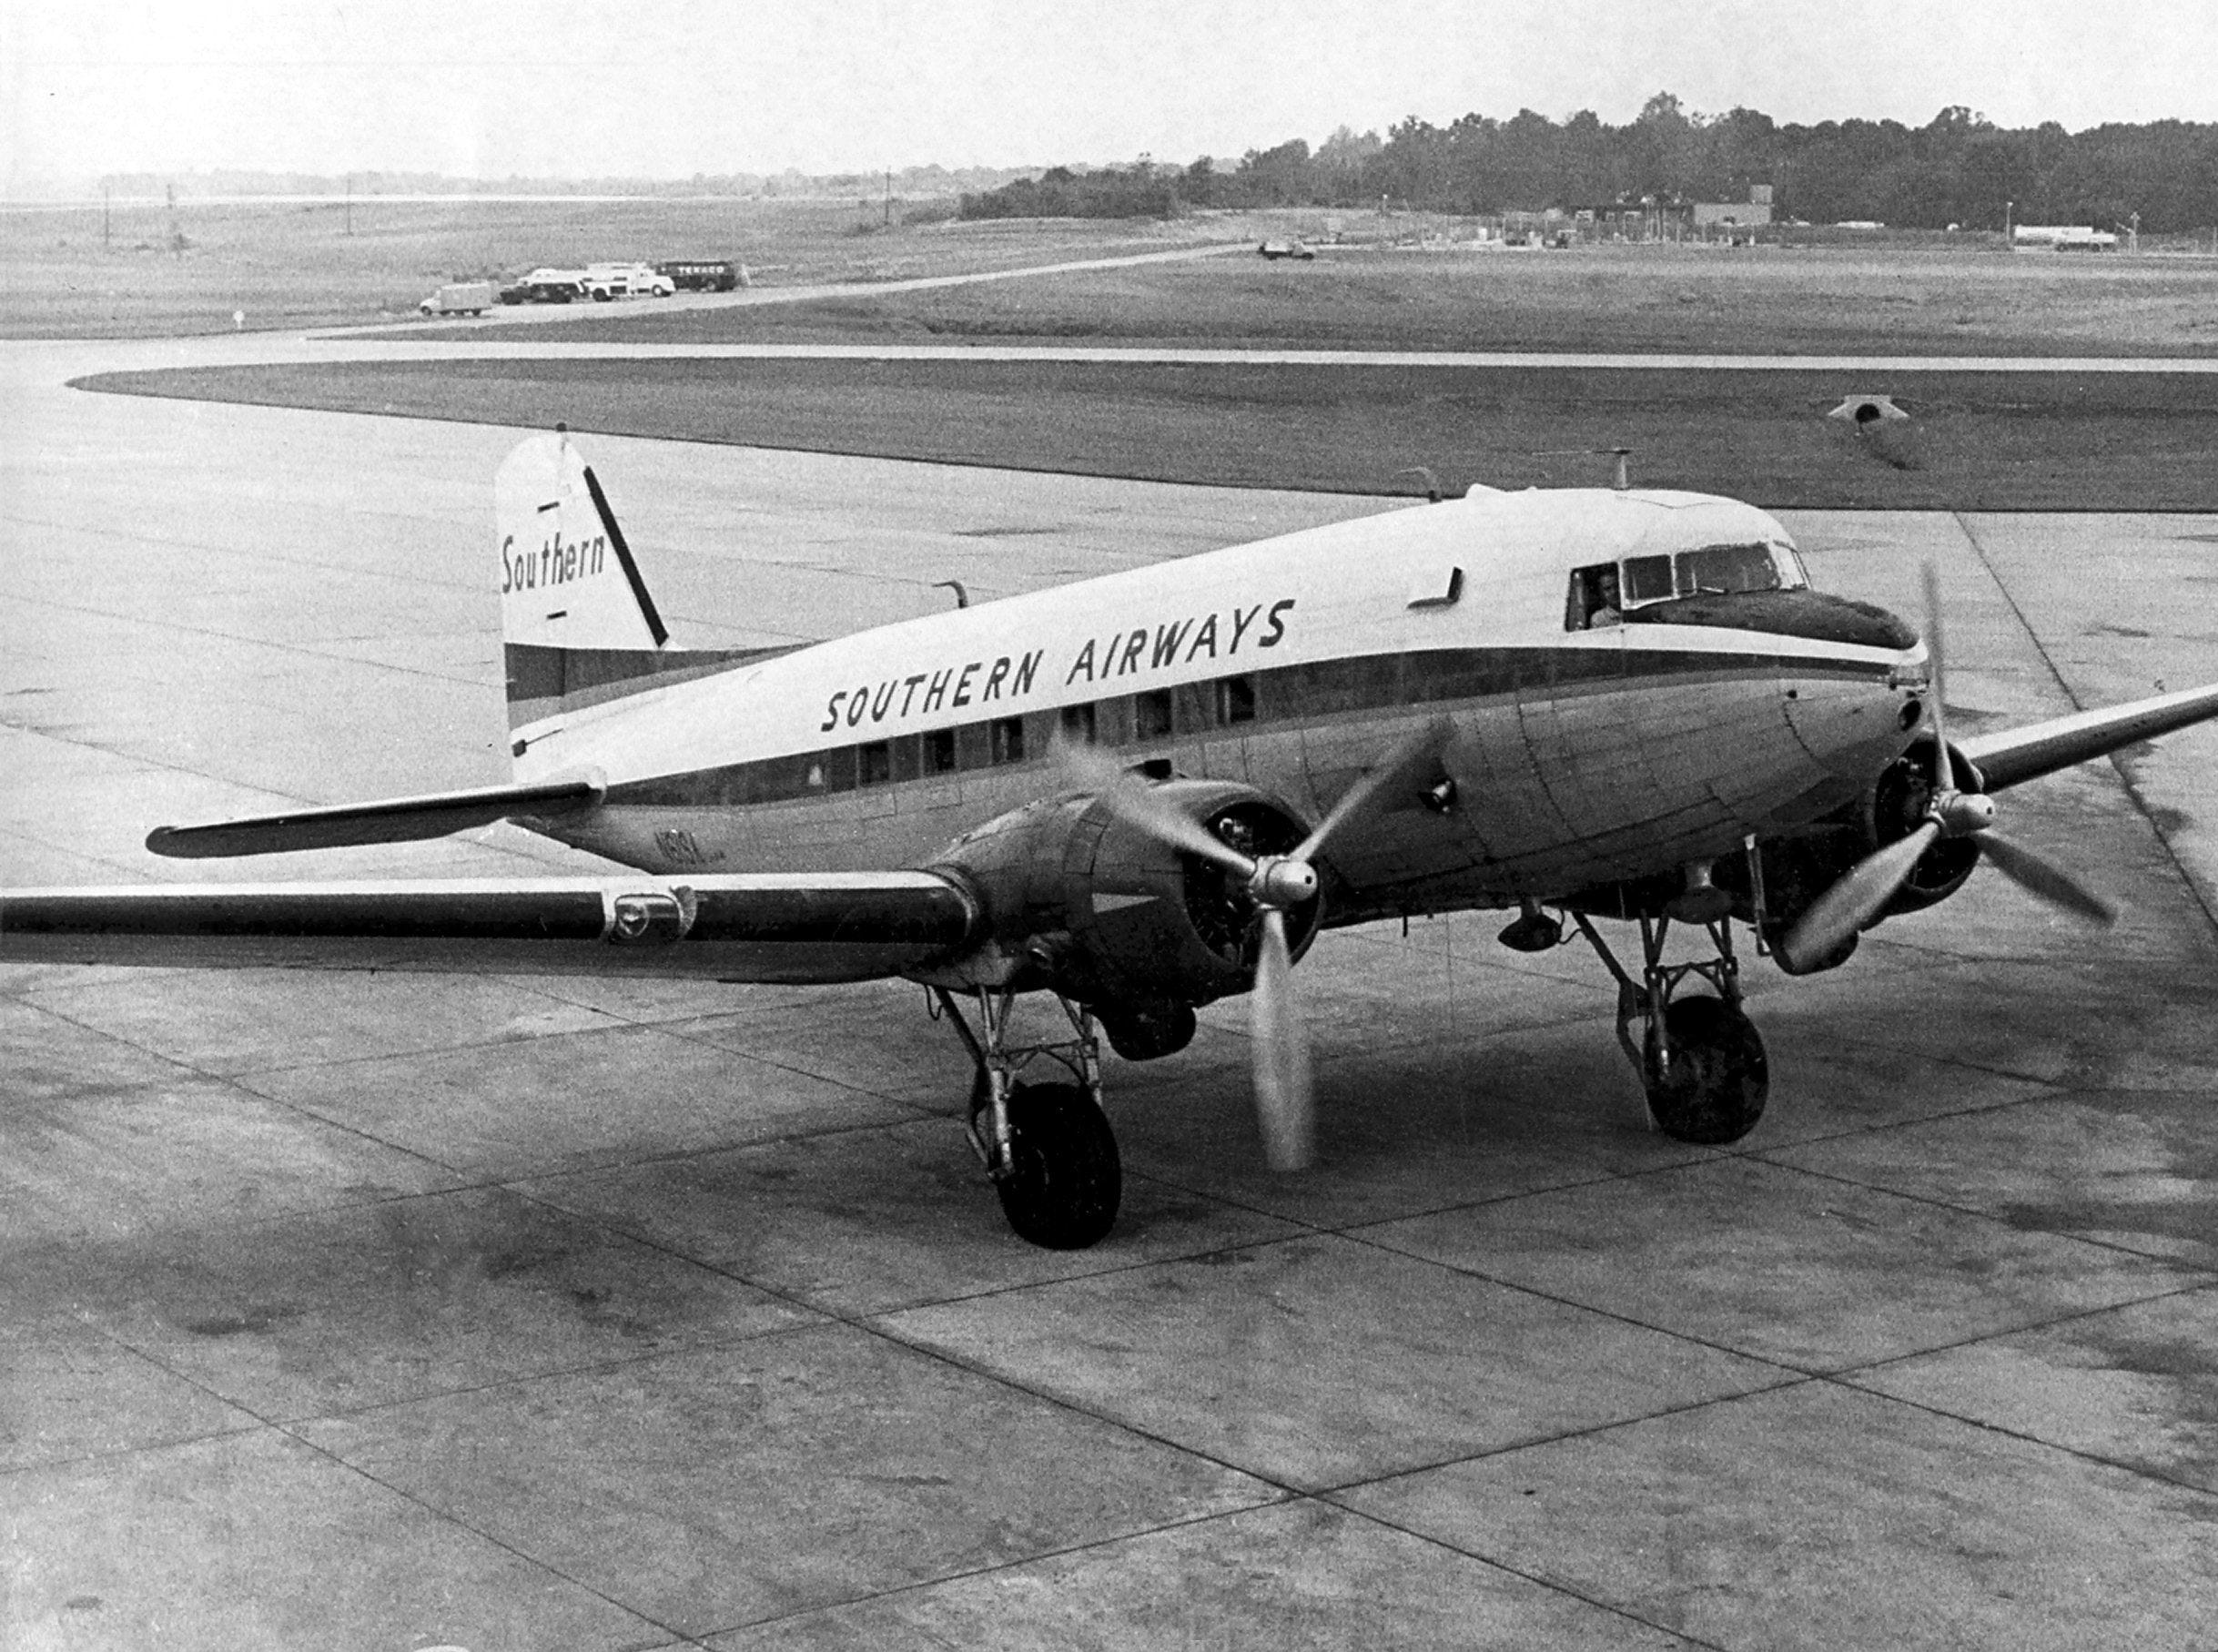 Southern Airways Flight 240 was to depart Dothan, Ala., at 6:55 a.m. July 31, 1967, making stops in Montgomery, Birmingham and Florence-Sheffield before its 10:20 scheduled arrival in Memphis. Because of mechanical problems, the plane was flown back to Memphis from Birmingham, with the remaining stops canceled. That would be the airline?s last scheduled flight of a DC-3, the last of 26 owned by Southern. The planes will be sold to make way for the airline?s DC-9 jets.